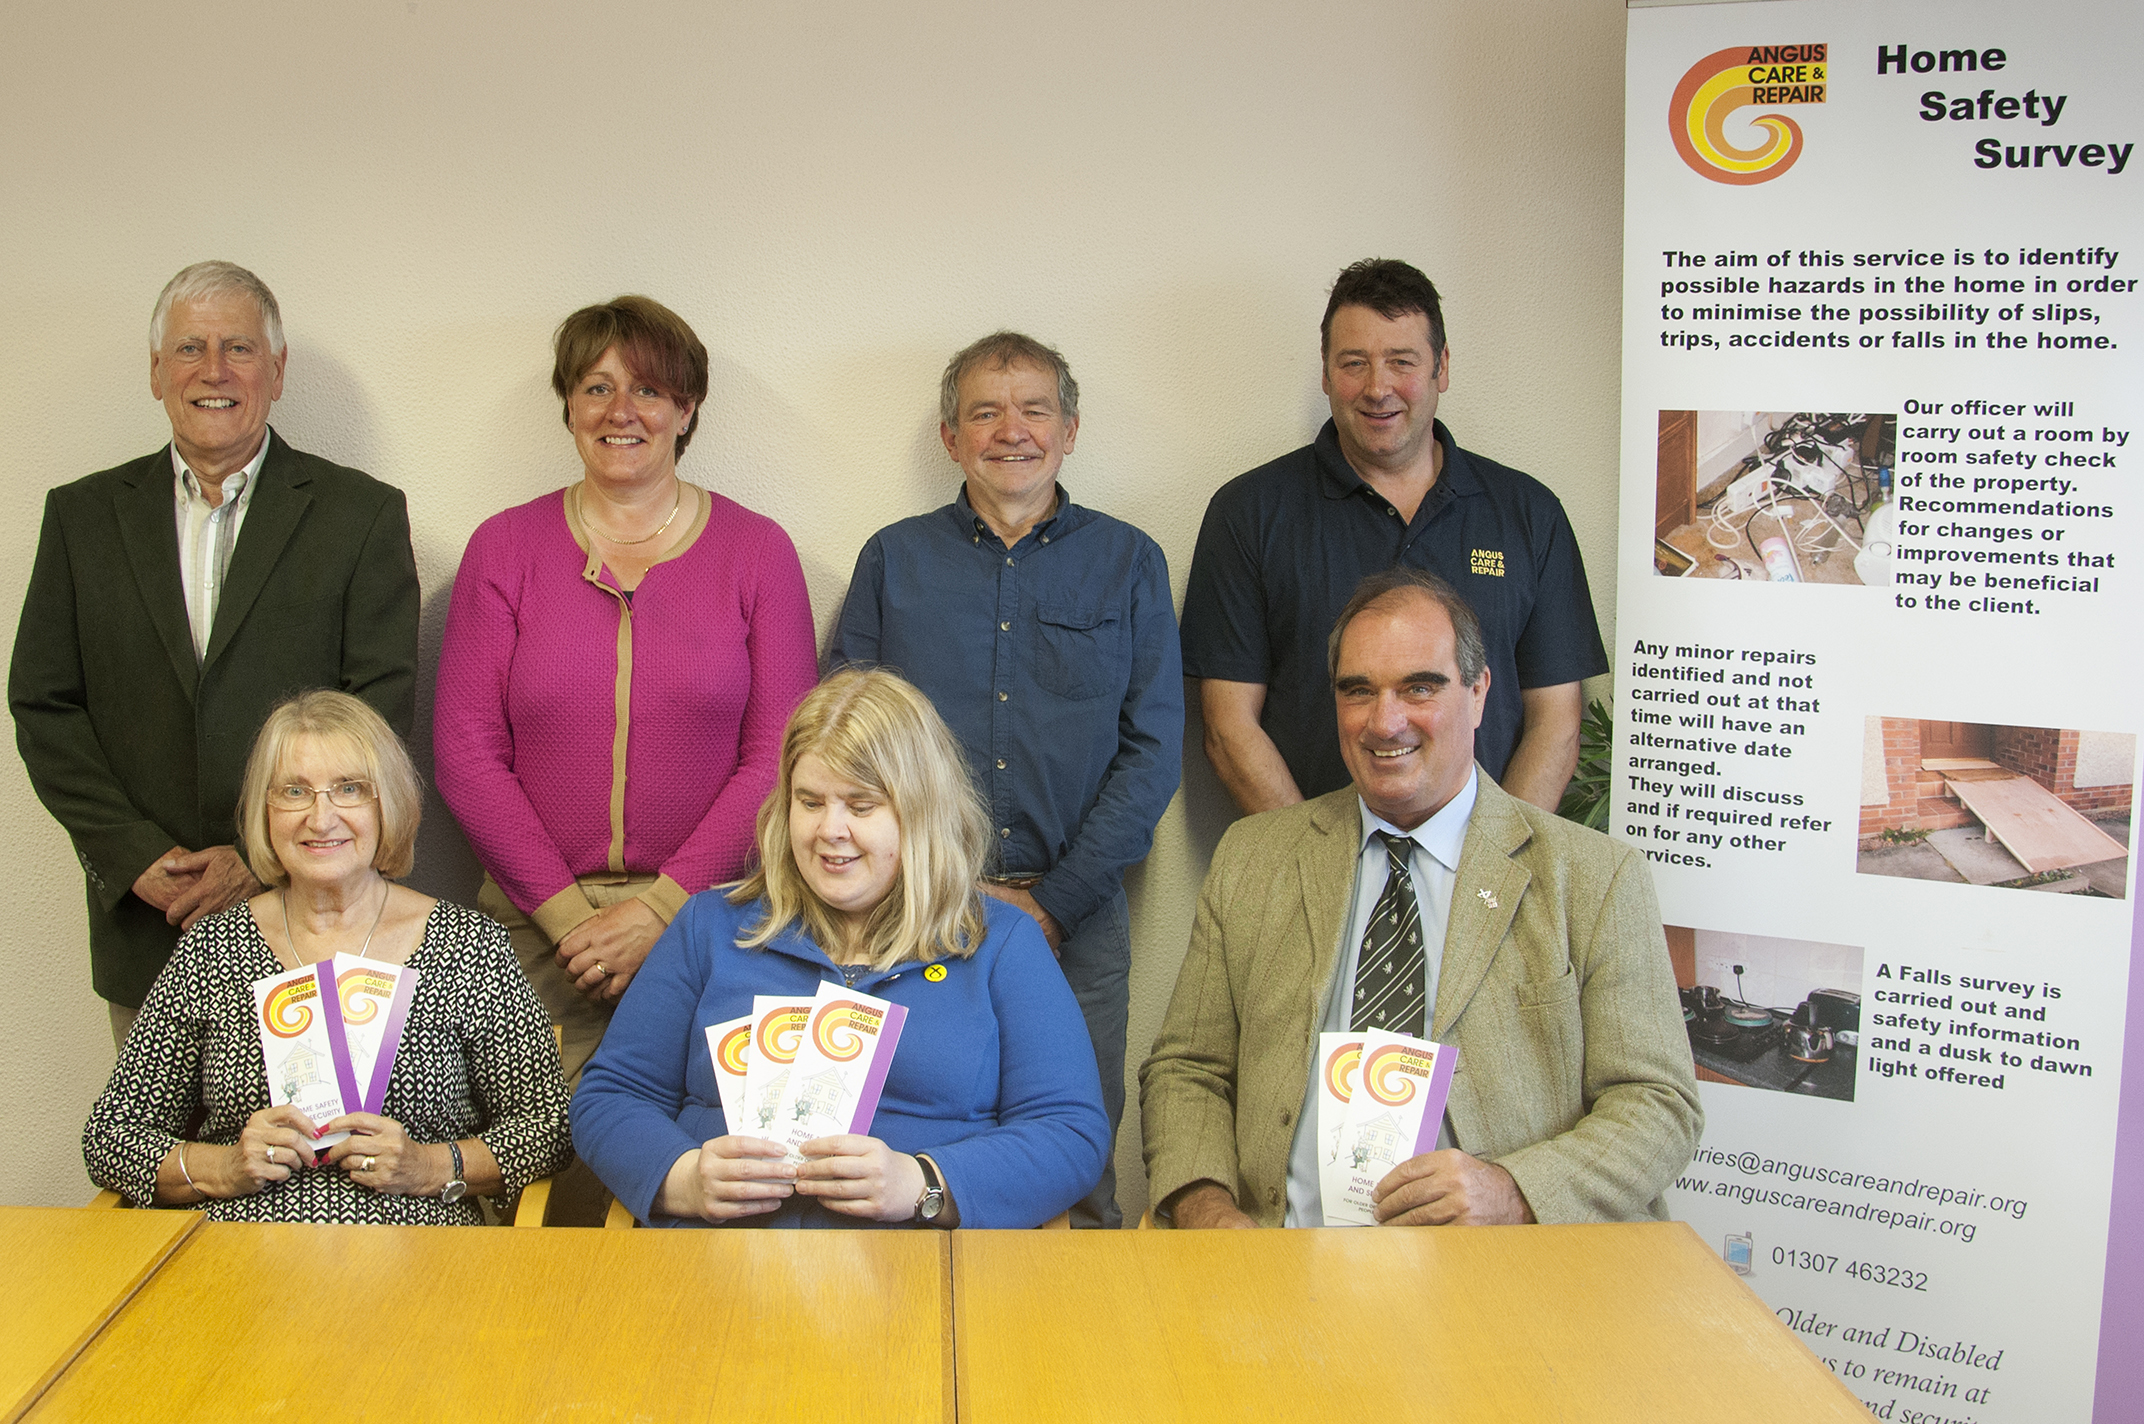 Members of the Angus Care and Repair board. Back (l-r) Jim Johnstone (chairman), Judith Leslie (manager) Calum McNicoll (vice chair) John Ness. Front (l-r) Margaret Mitchell MBE, Councillor Sheila Hands and Councillor Gavin Nicol.